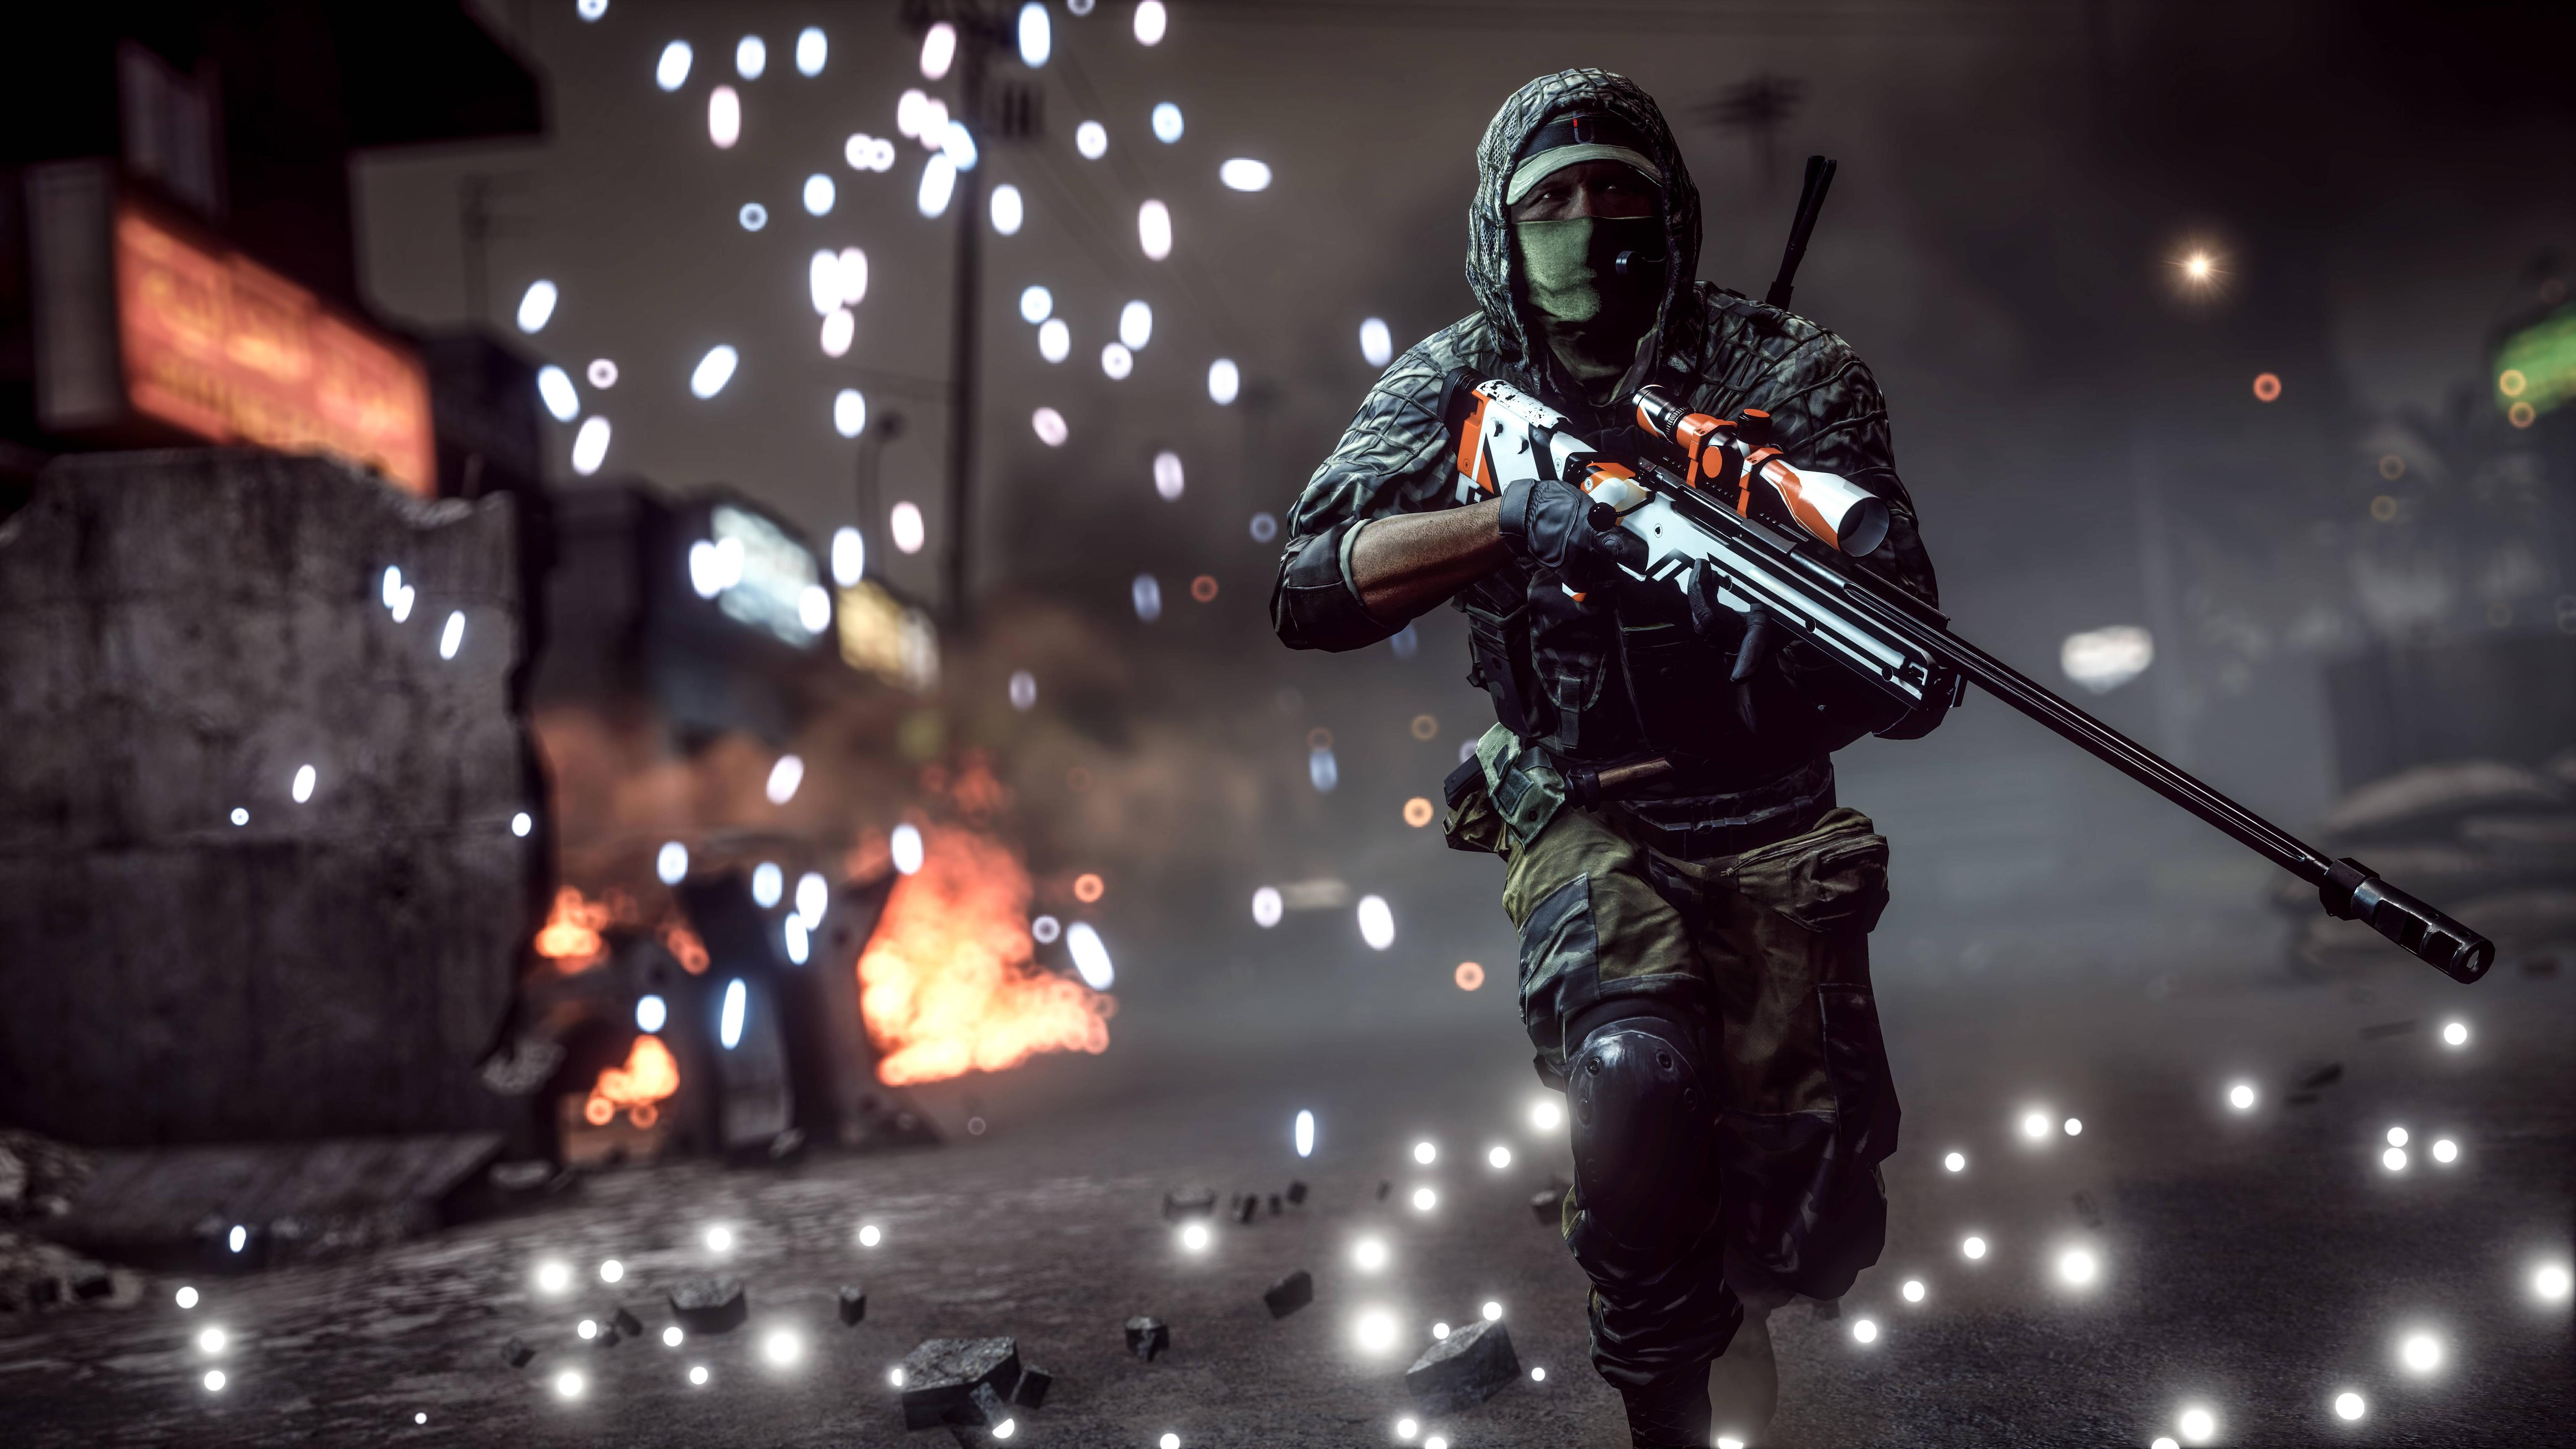 Battlefield 4 Hd Hd Games 4k Wallpapers Images Backgrounds